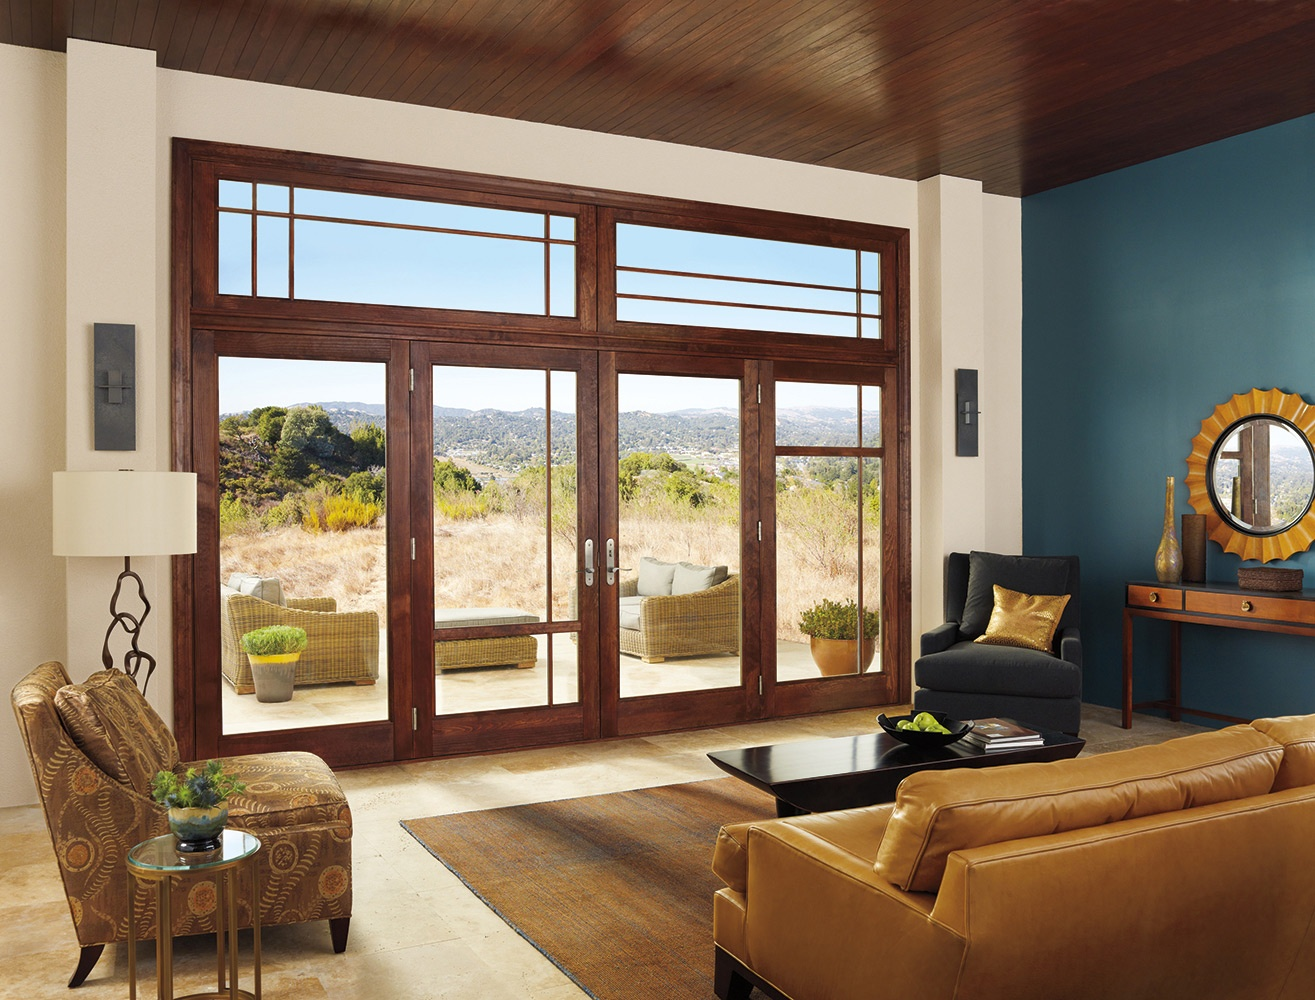 000320.jpg & Marvin Swinging Patio Doors | Marvin Windows and Doors